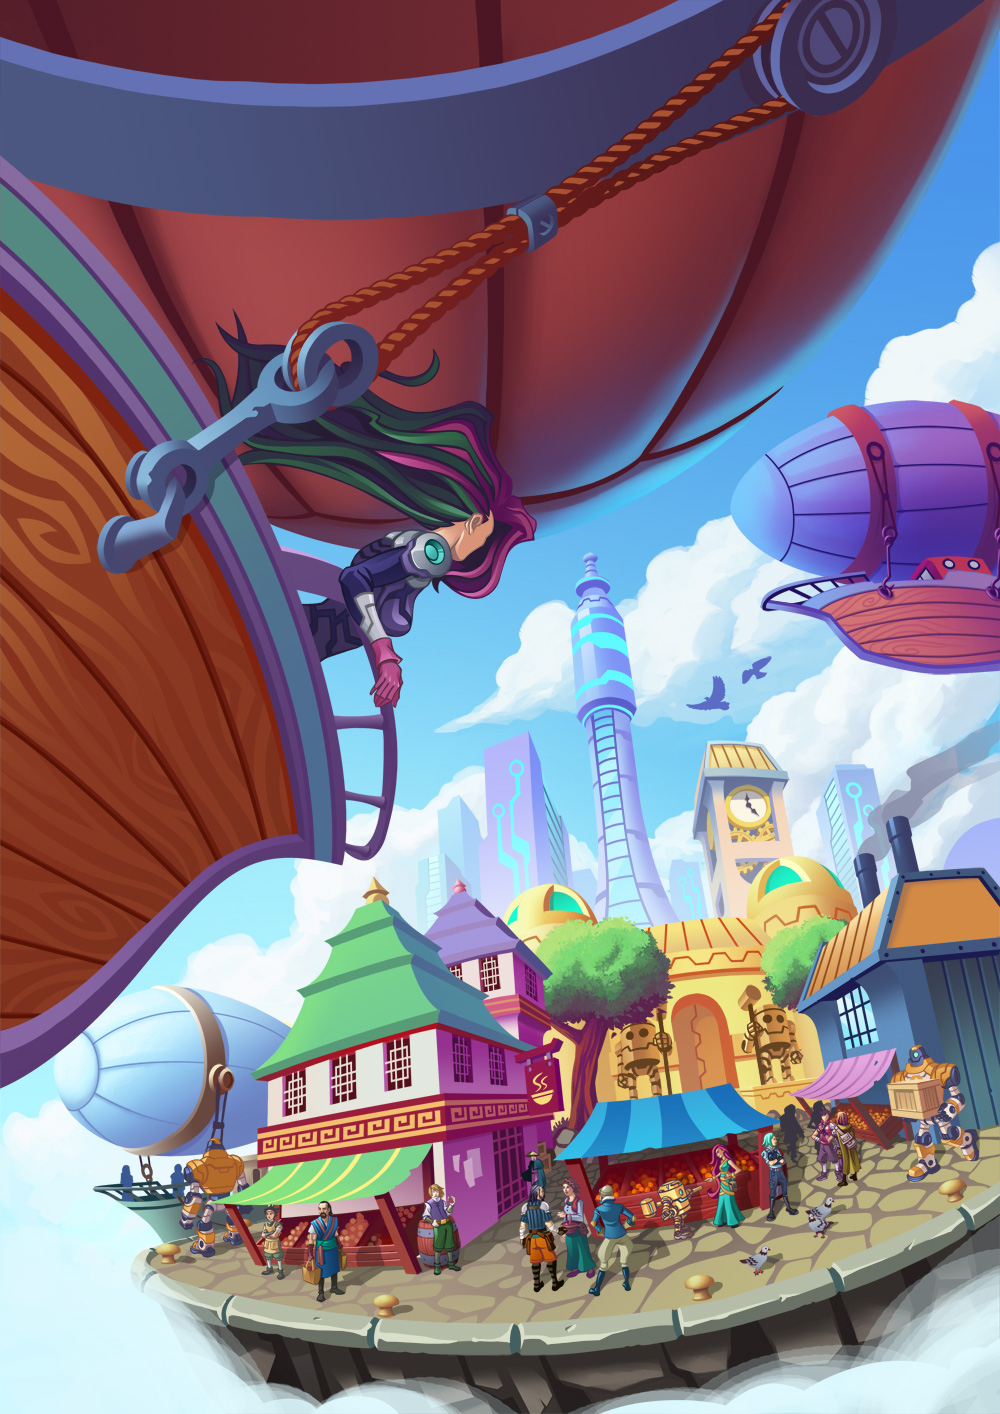 Skyward_Cover_Final01.jpg